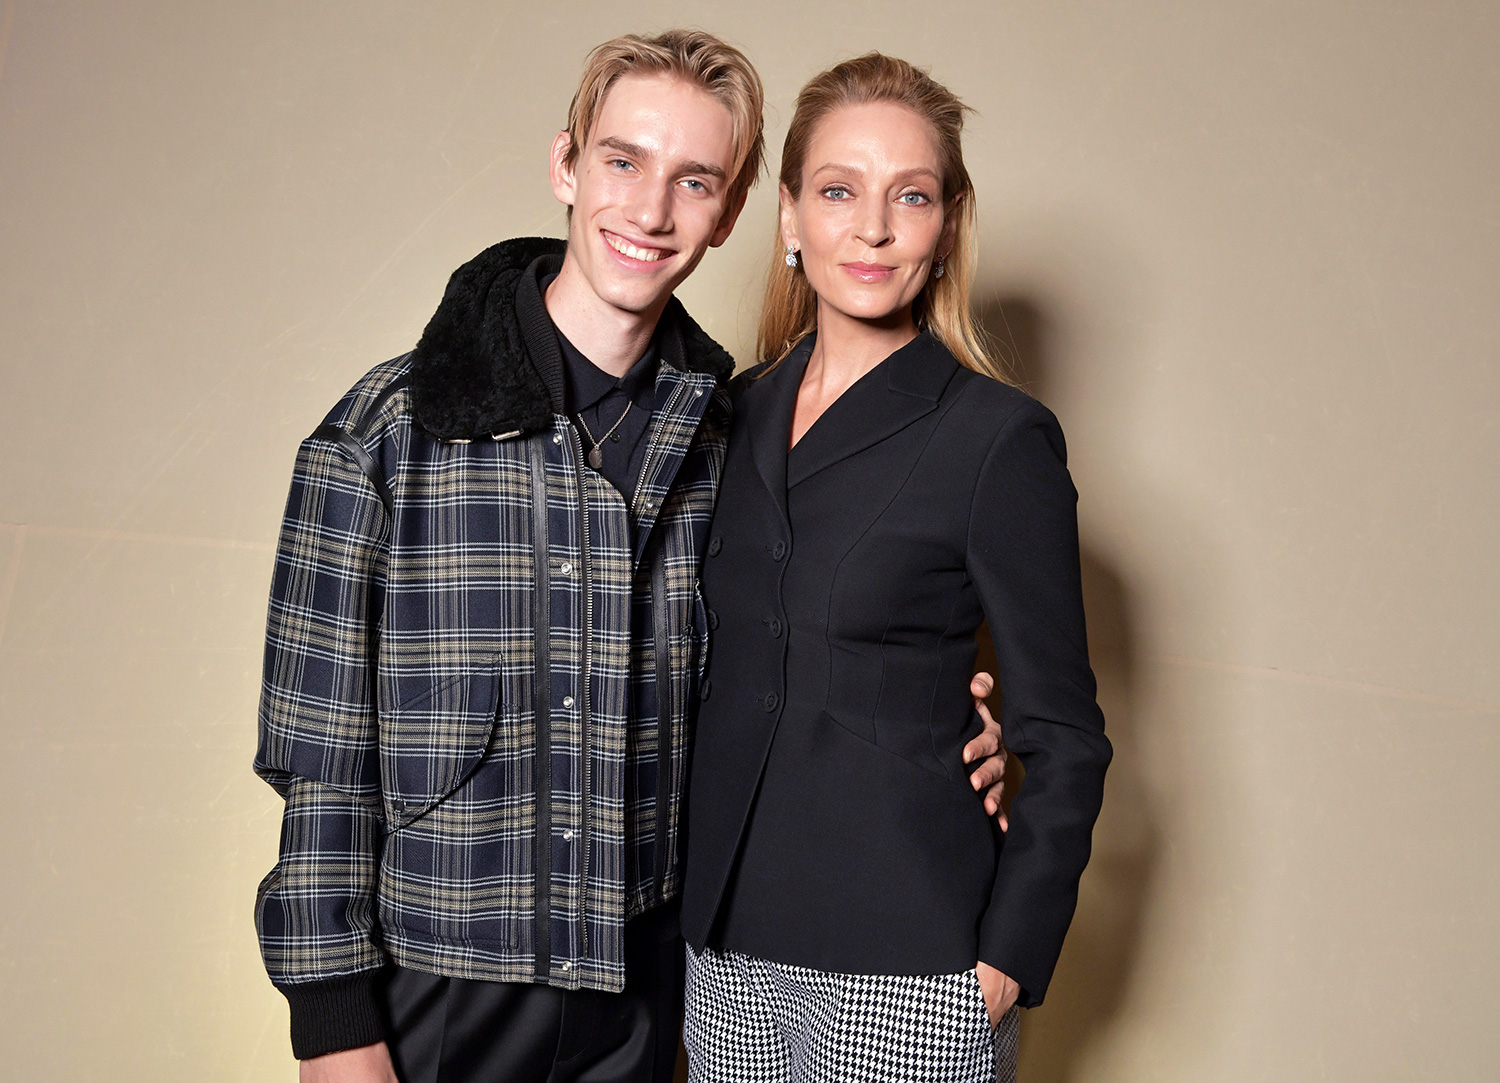 Levon Thurman-Hawke and Uma Thurman in the front row Dior show, Front Row, Spring Summer 2020, Haute Couture Fashion Week, Paris, France - 20 Jan 2020